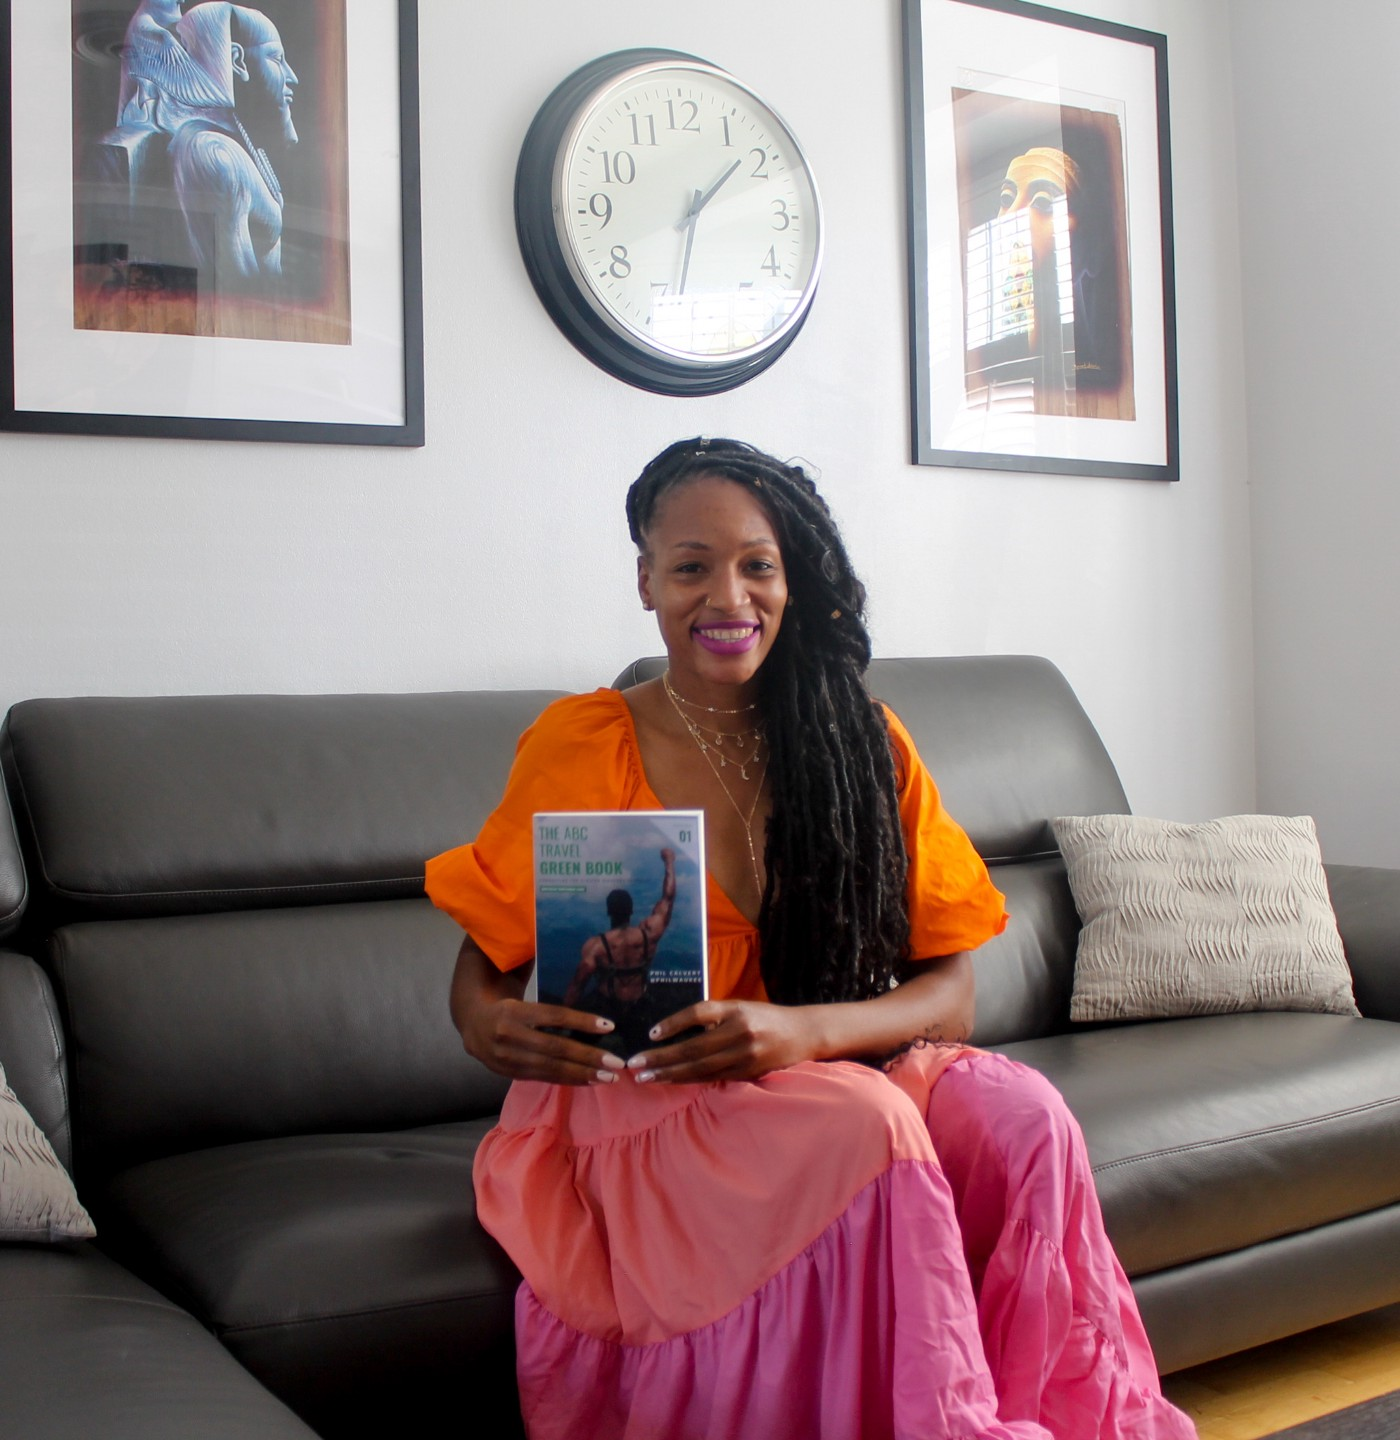 Martinique Lewis sitting on a black couch holding her book on her lap.